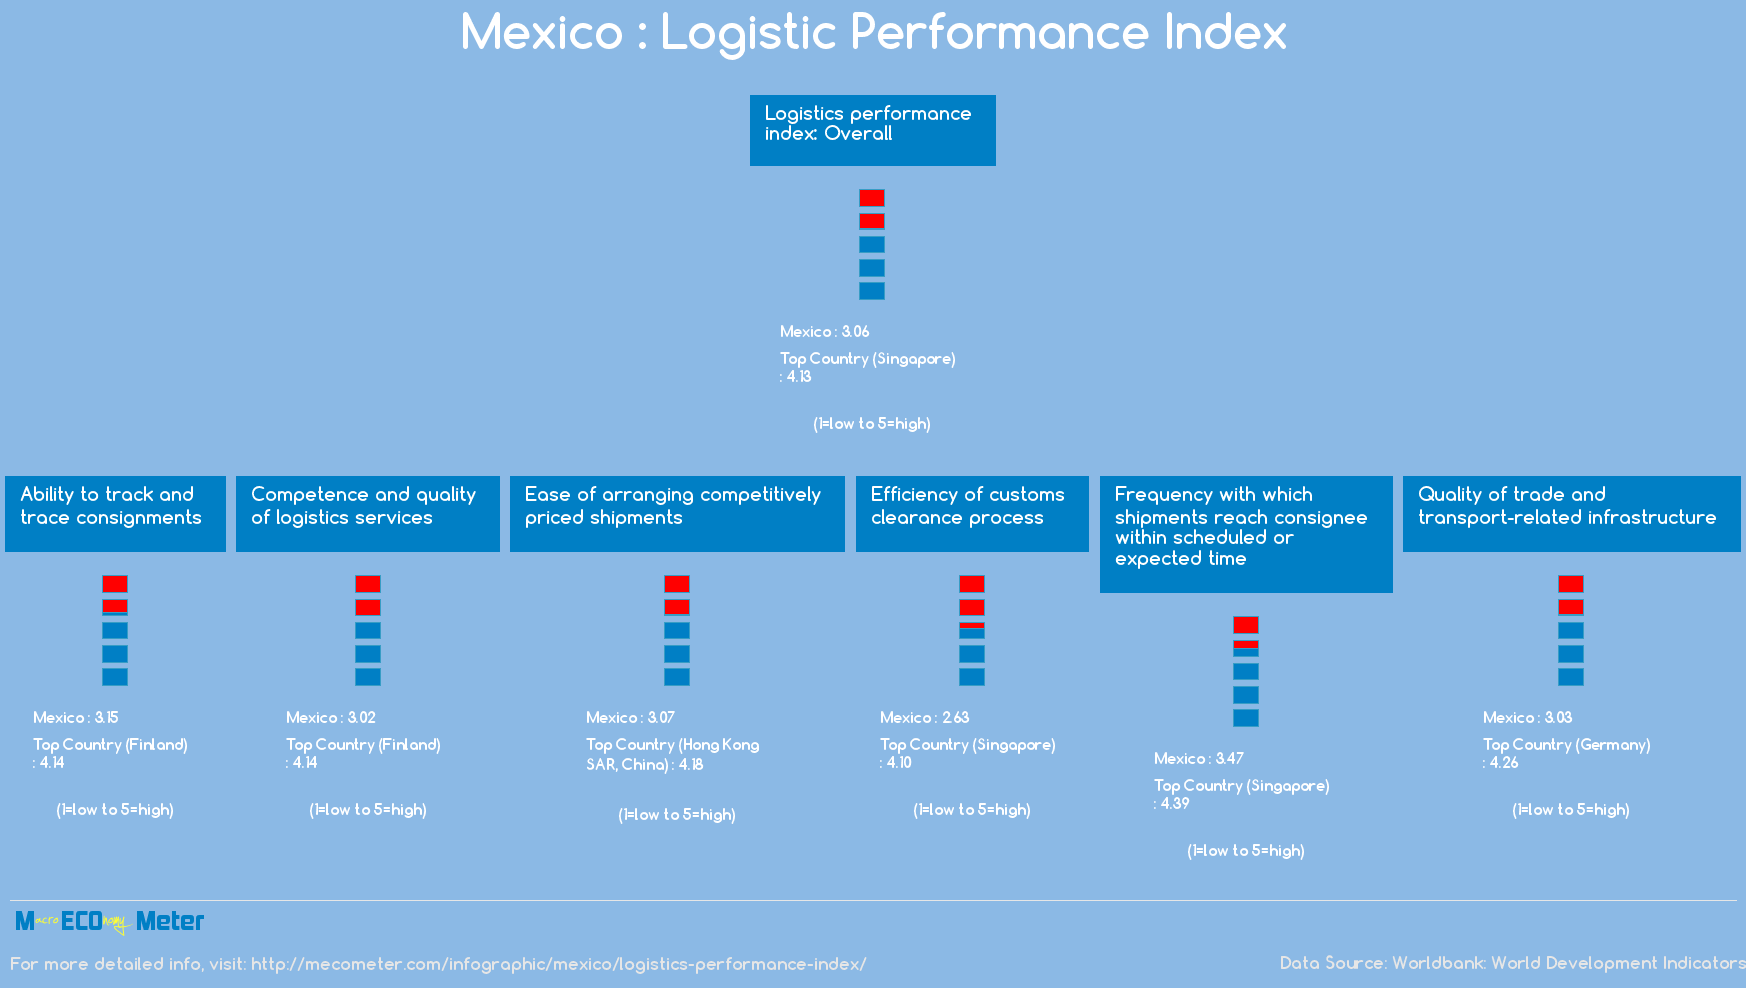 Mexico : Logistic Performance Index